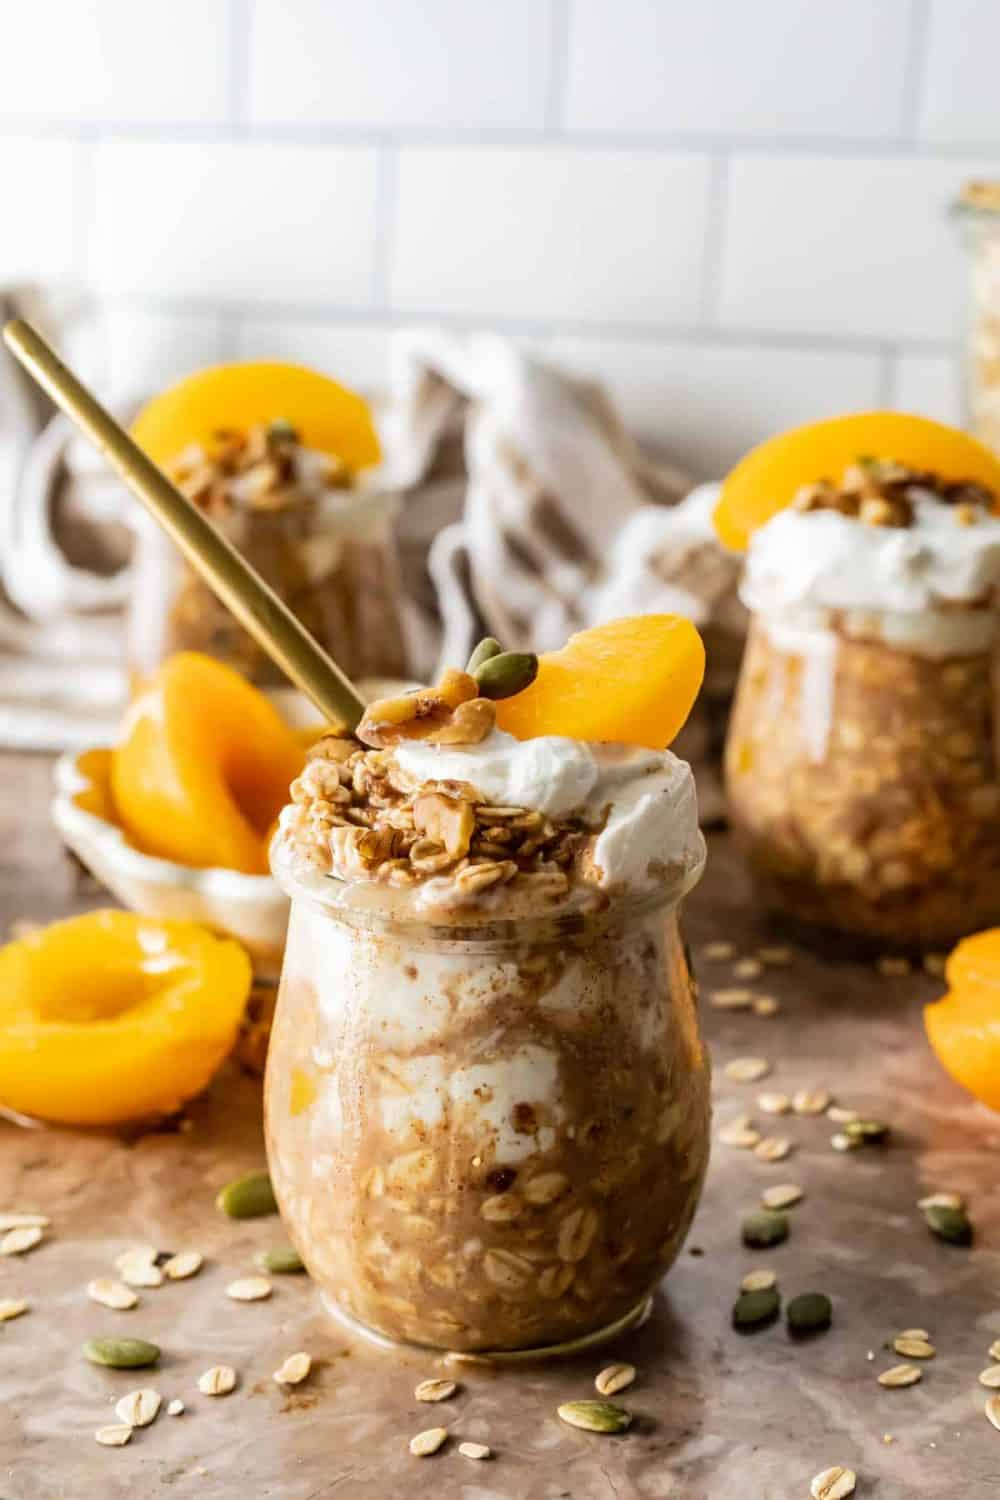 This recipe with canned peaches is for Peach Cobbler Overnight Oats. Glass jars are filled with overnight oats and topped with peach slices and yogurt .